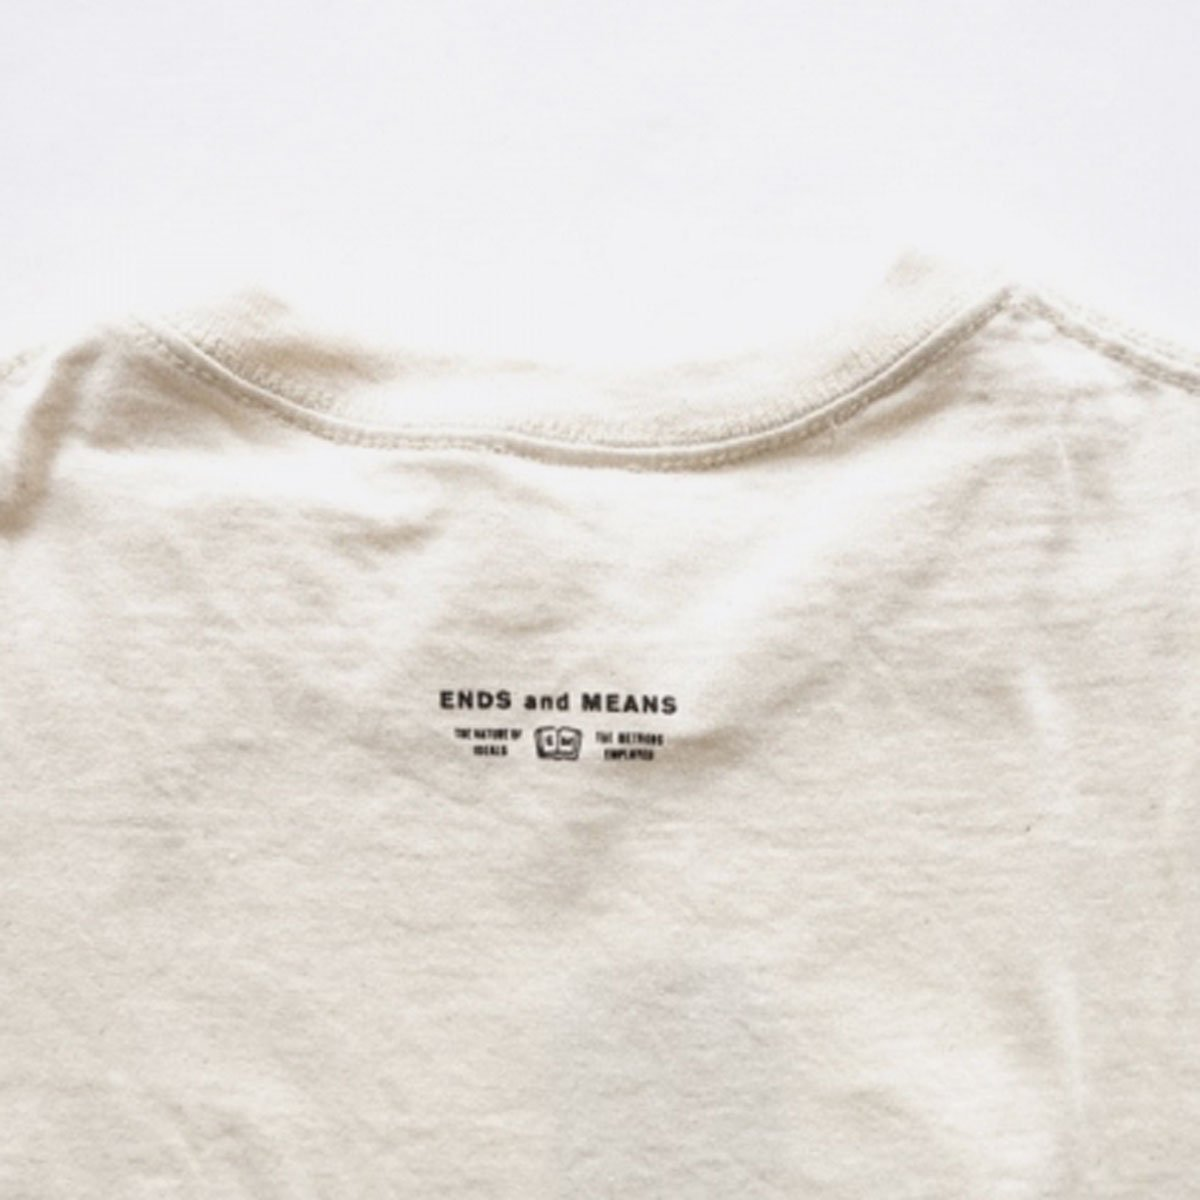 ENDS & MEANS H.O.M.E. S TEE  (NATURAL)4